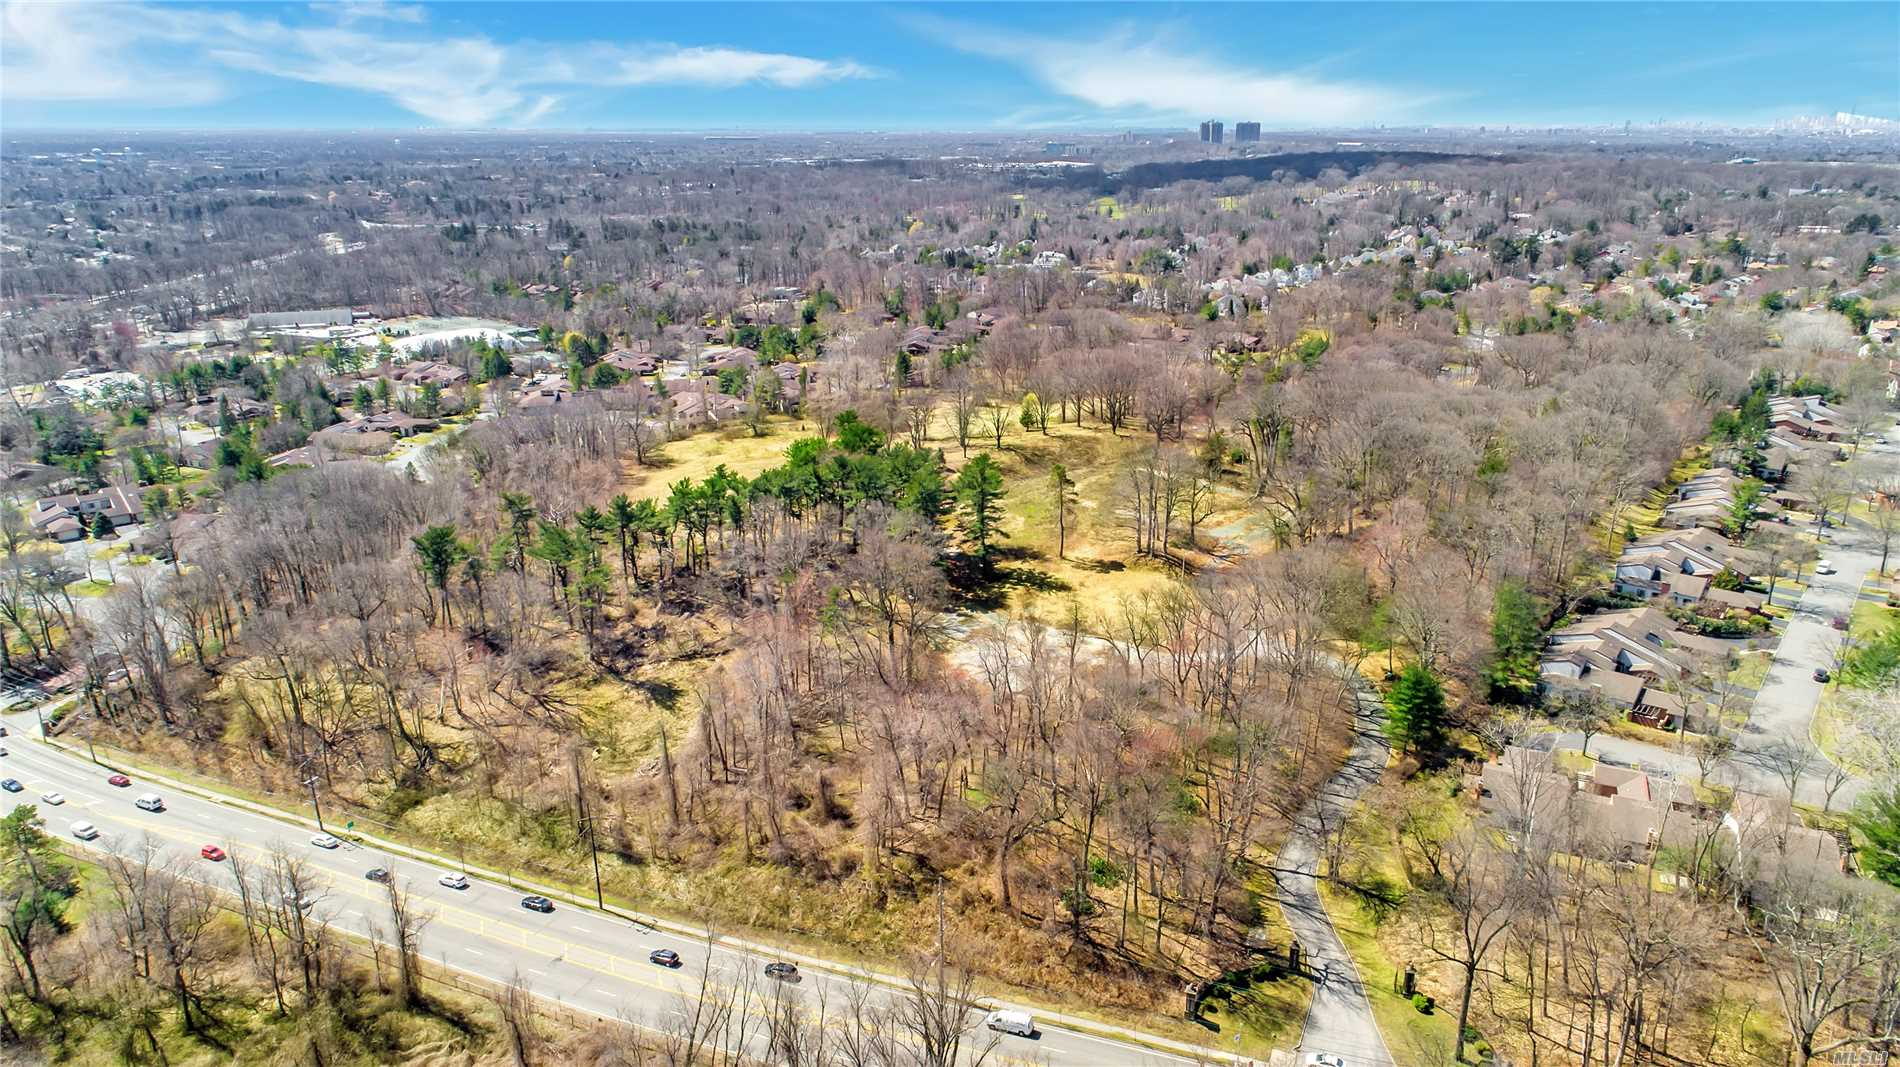 An unparalleled opportunity to develop the Gold Coast of Long Island's most exclusive gated community. The site has been carefully assembled to host 46 single family residences on property's ranging from approximately .5 acre parcels - approximately 1 acre parcels, many of which will feature their own private swimming pools.